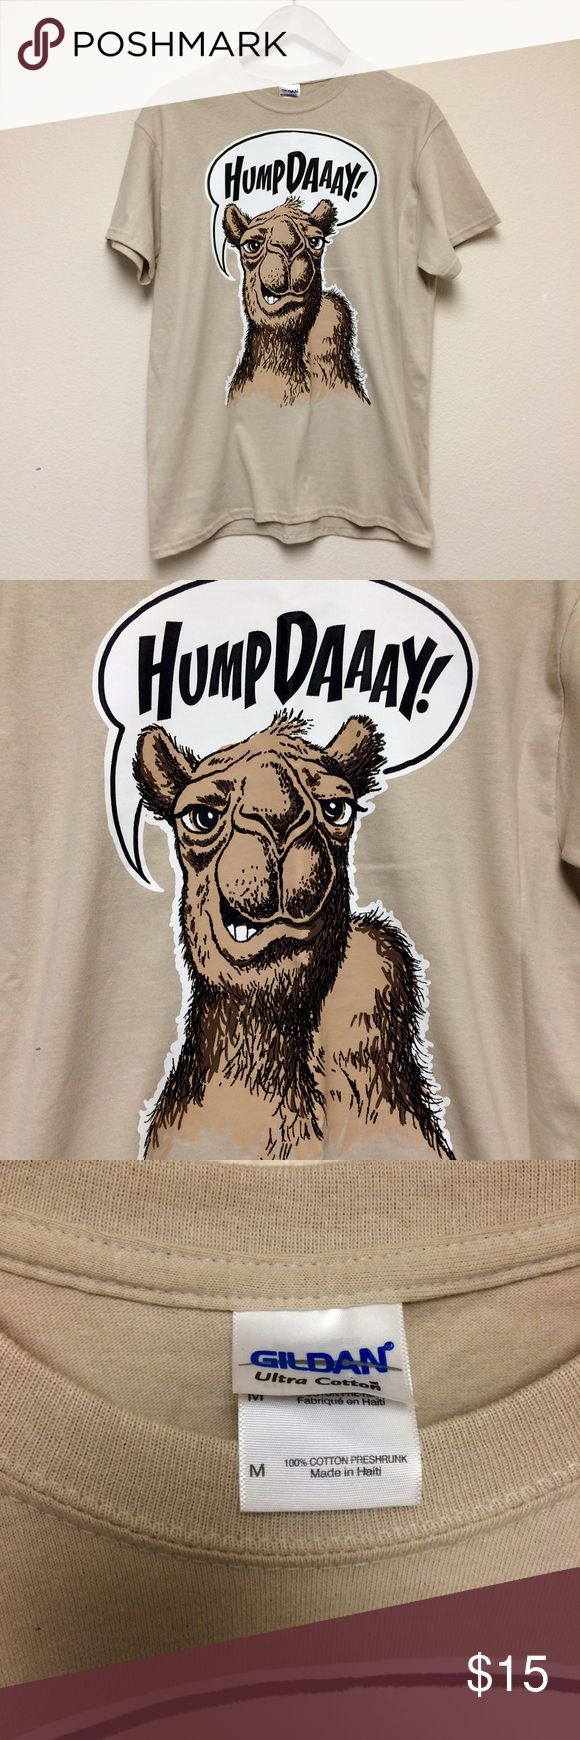 Hump Day camel t-shirt Hump Day camel t-shirt. Great condition. Unisex size M. Vintage Tops Tees - Short Sleeve